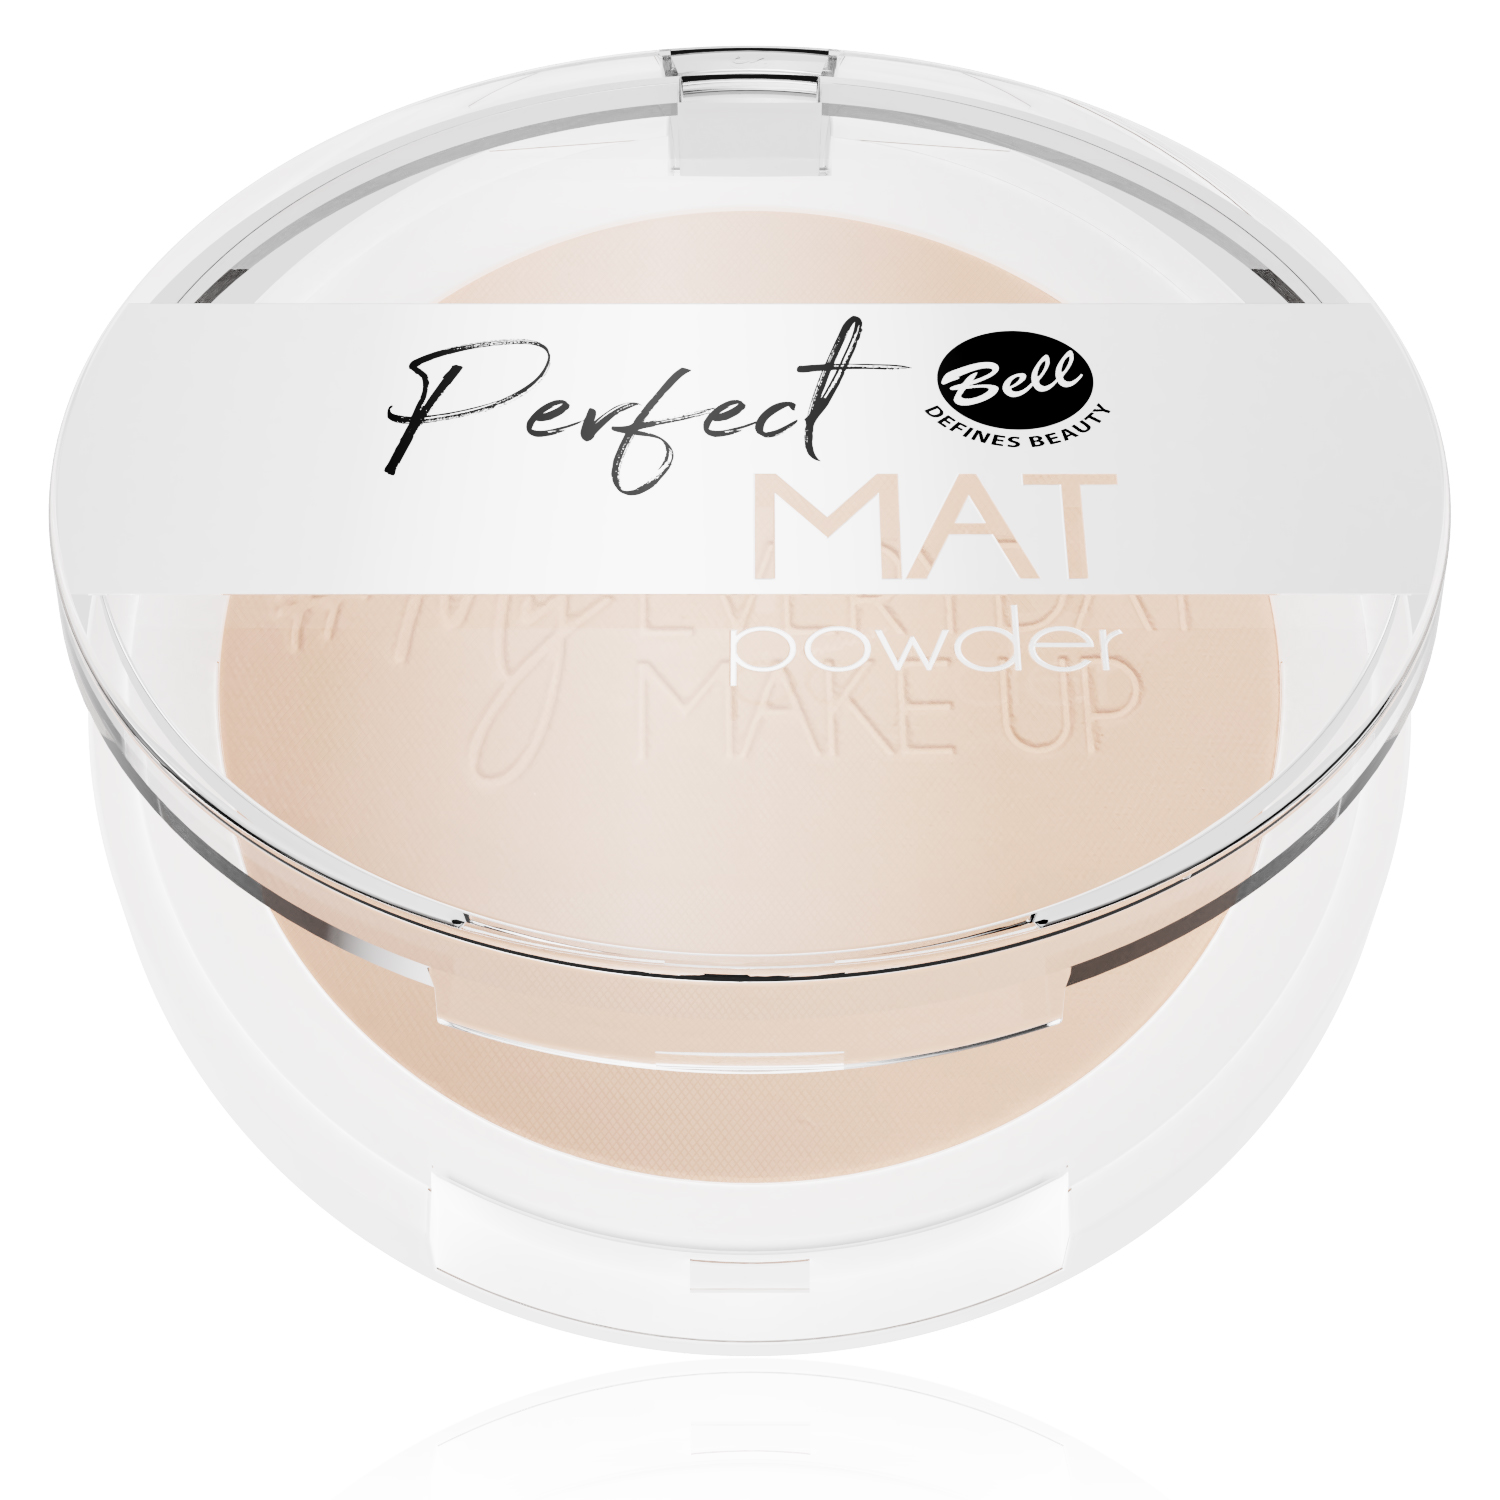 Perfect Mat Powder